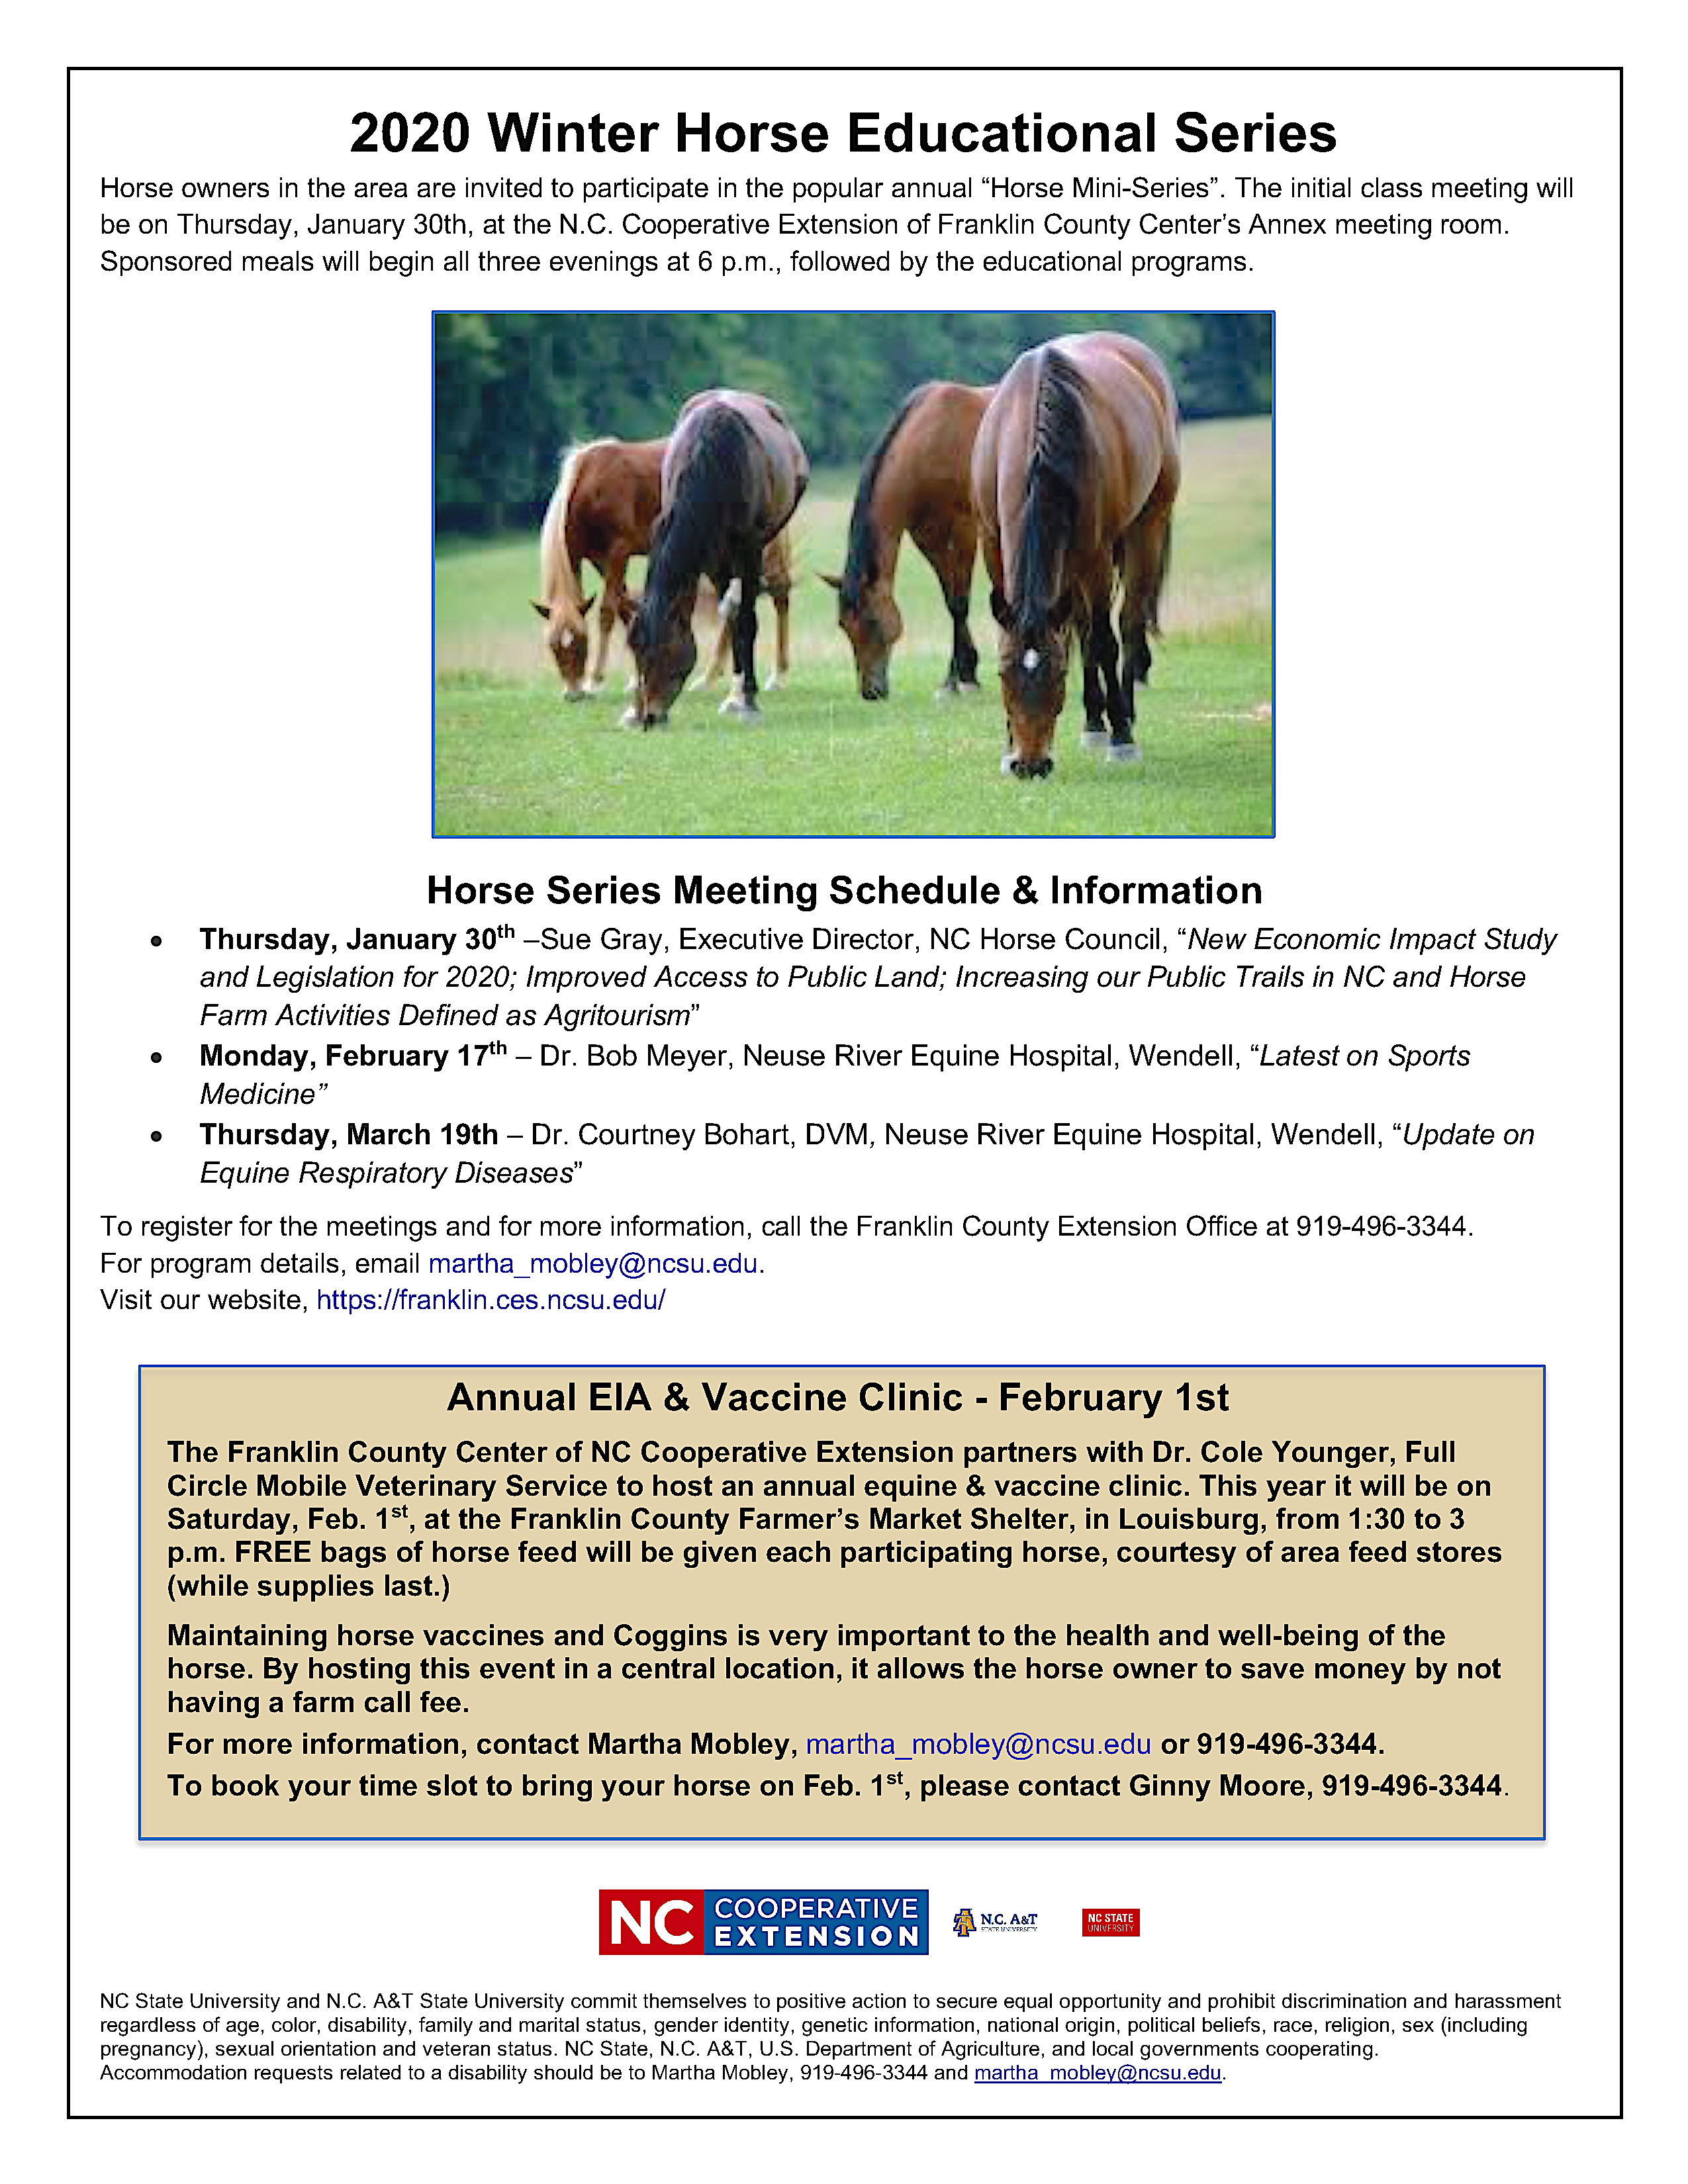 image of 2020 Winter Horse Educational Series and EIA/Vaccination Clinic flyer, including date, time, location and speaker information and picture of horses in a pasture.